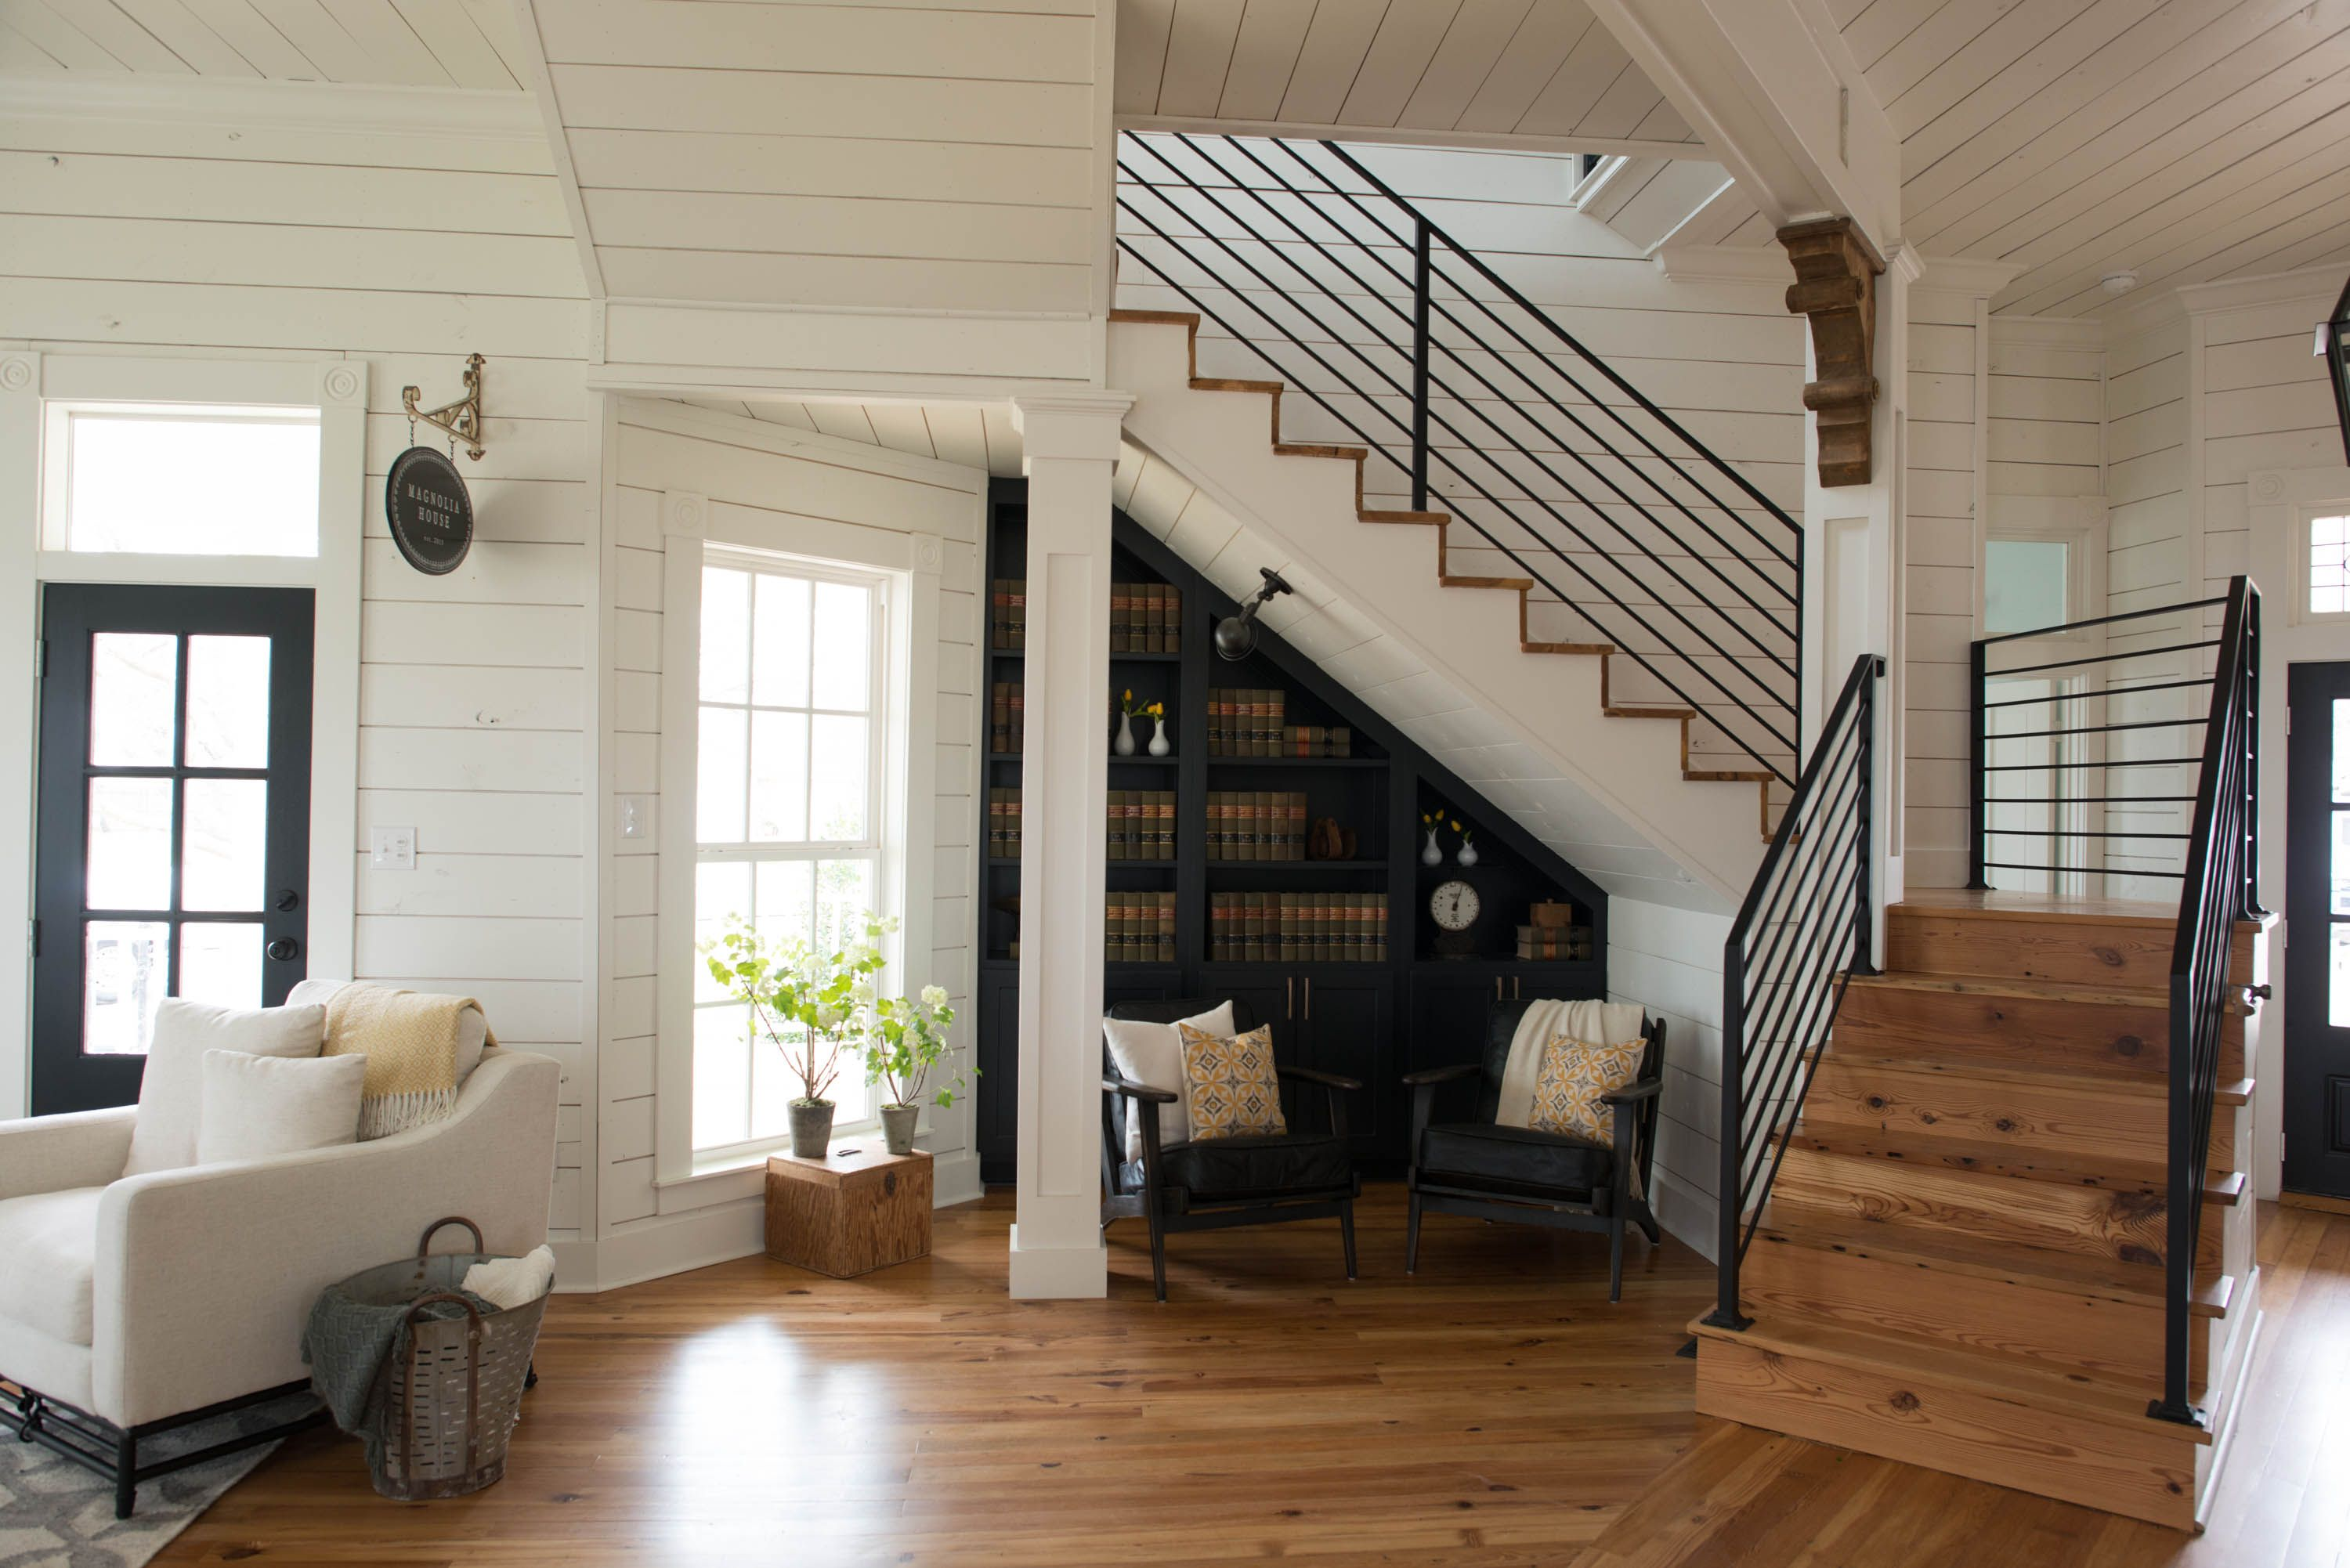 Fixer Upper Magnolia House Designed by Chip and Joanna Gaines